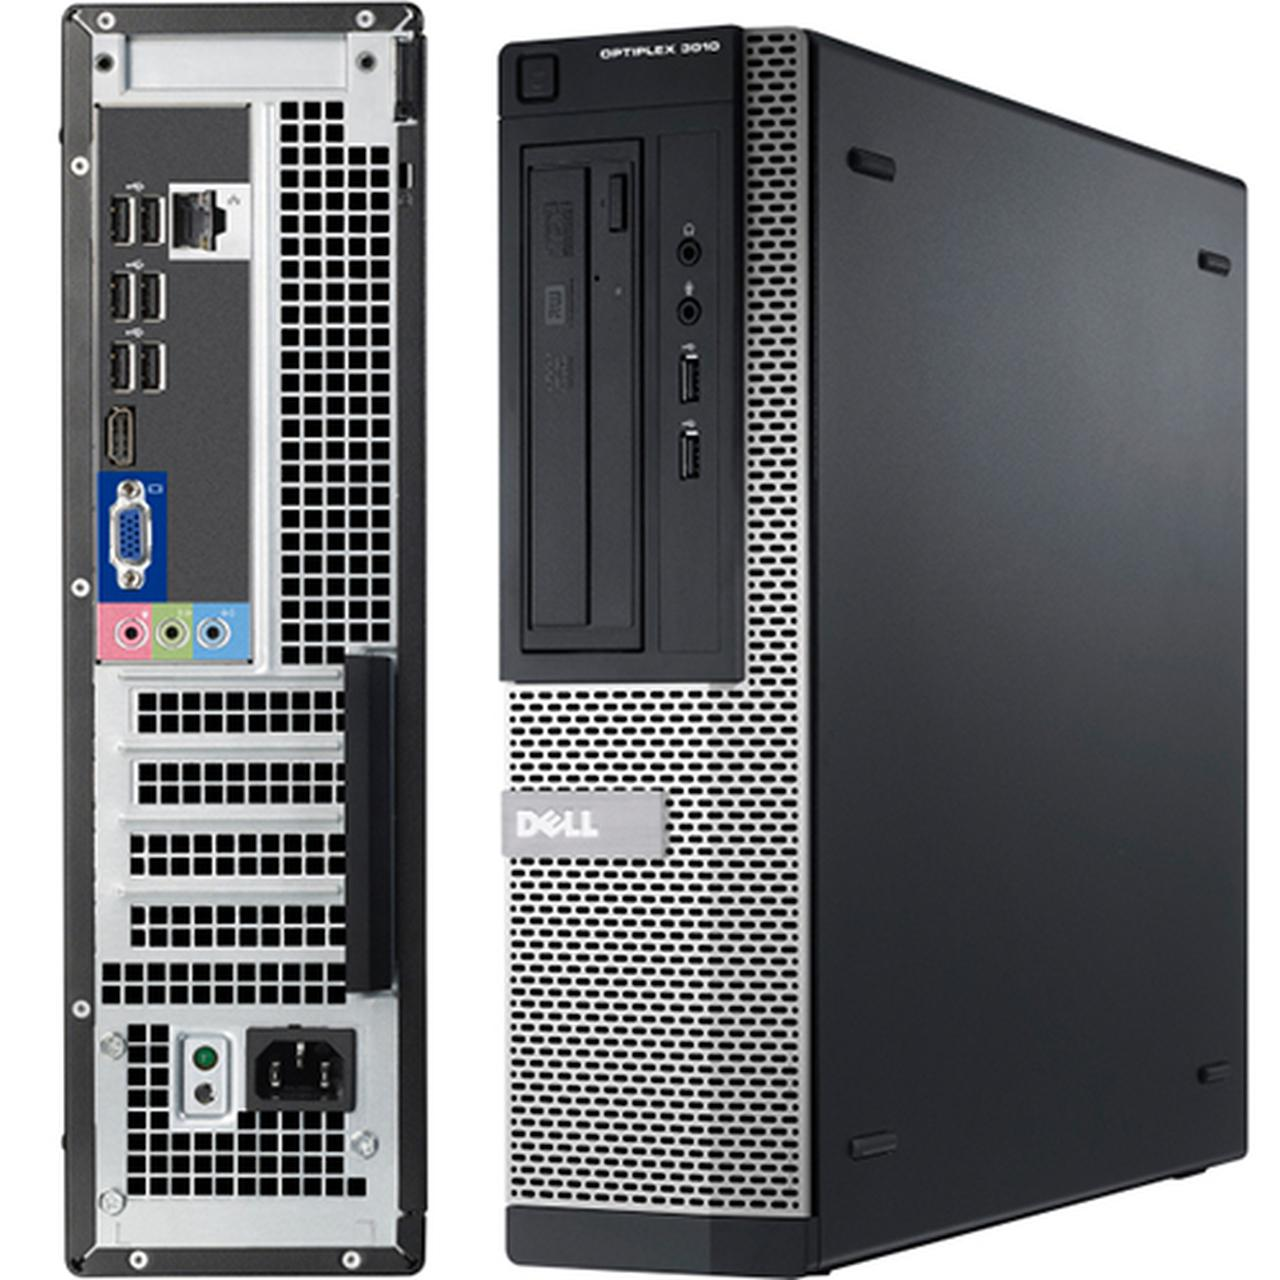 Dell OptiPlex 3010 DT Core i5 3,2 GHz - HDD 480 Go RAM 8 Go